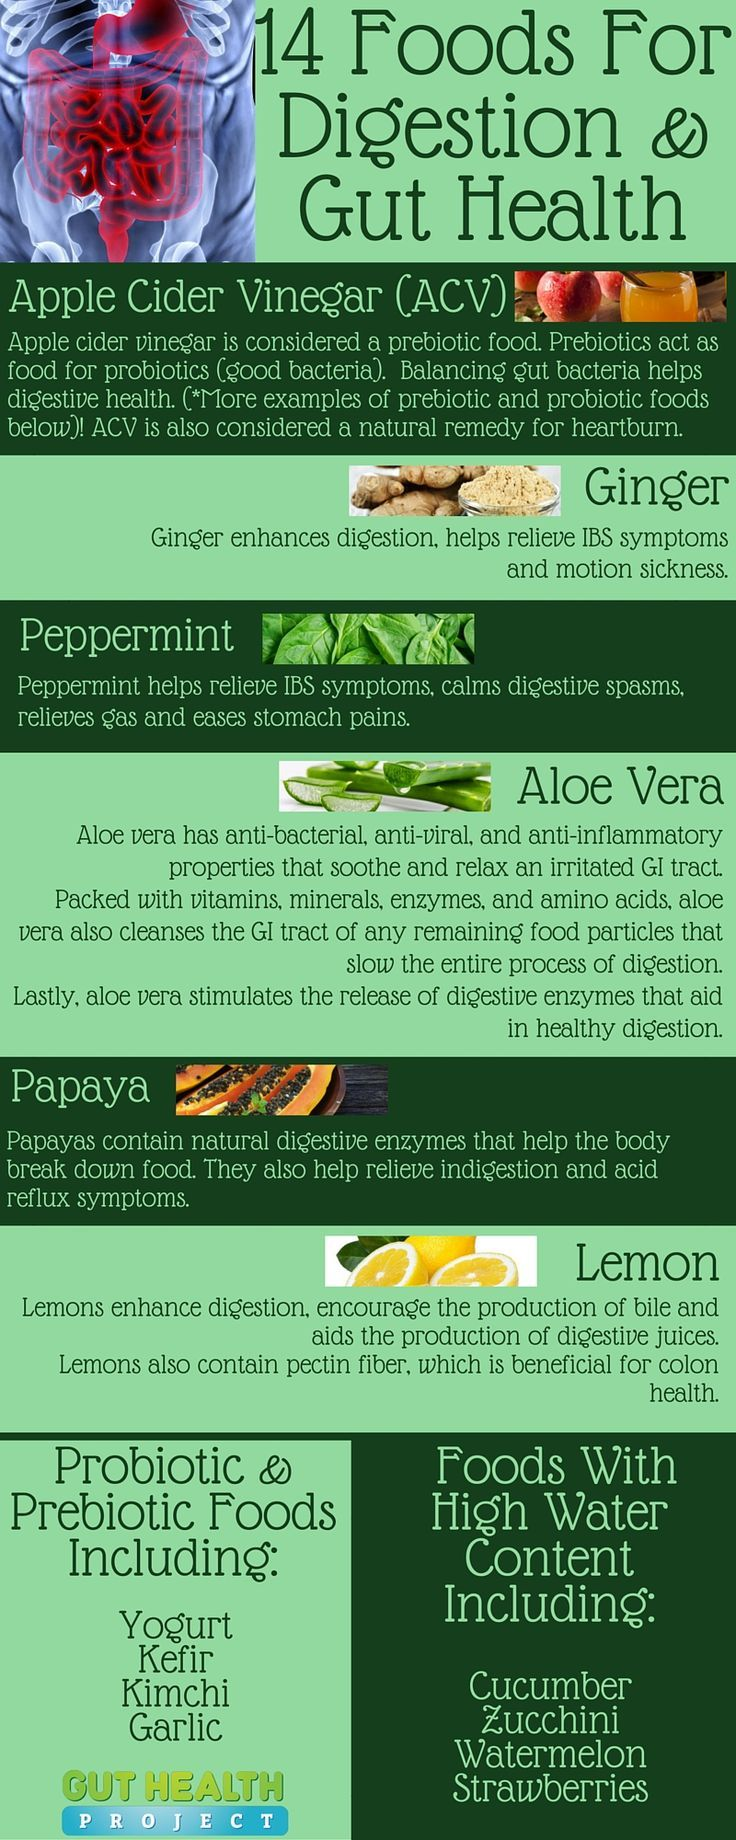 14 Foods For Digestion   Natural Remedies   Holistic   Healthy Eating   http://drphilipose.com/